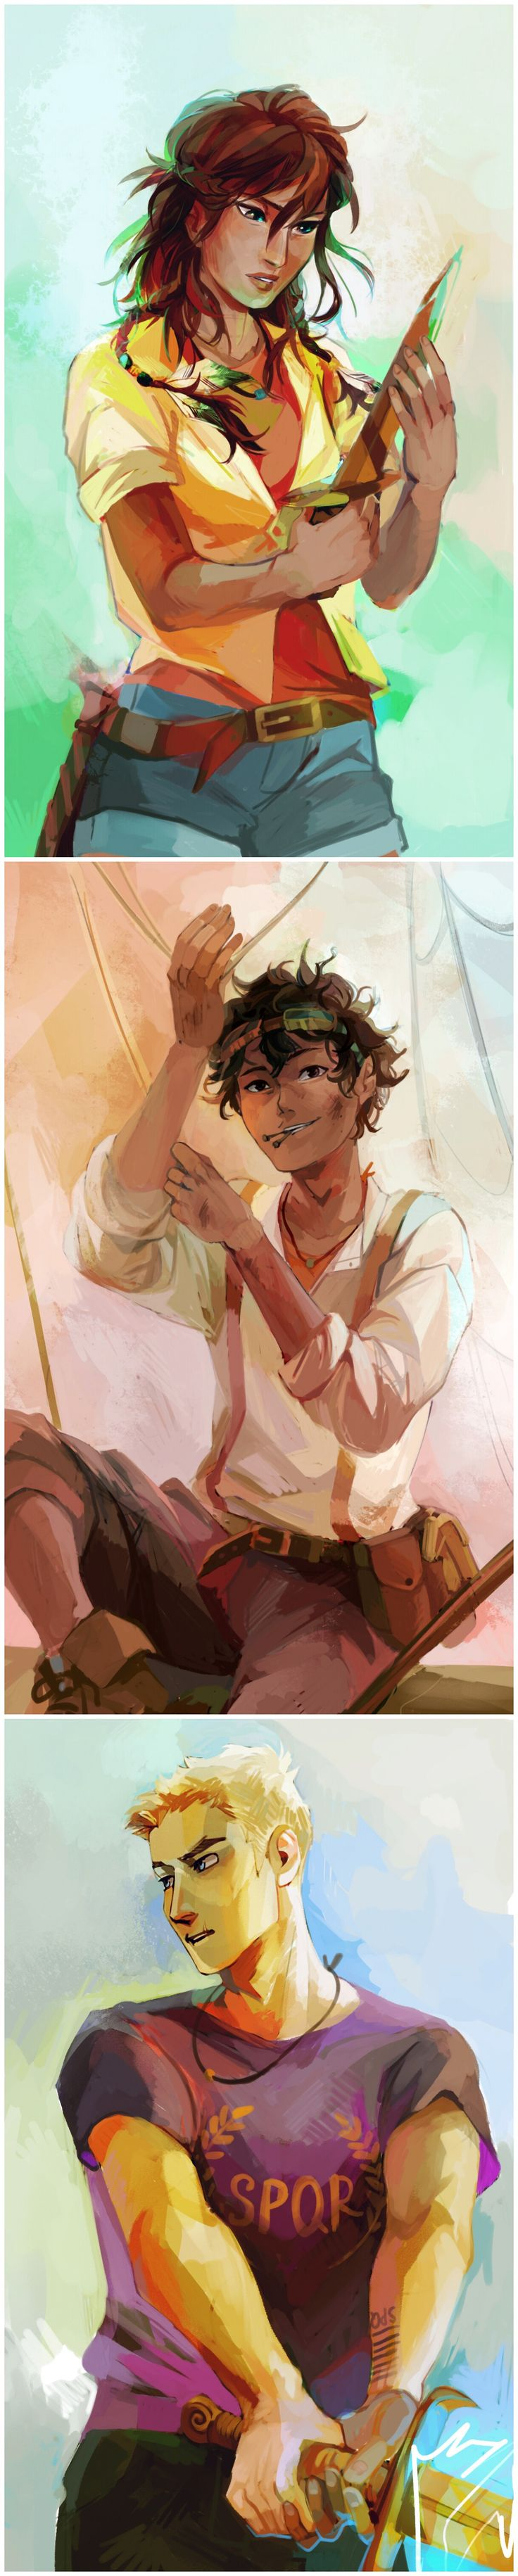 "Viria: Heroes of Olympus trio for Rick Riordan's website! I loved drawing Leo so much I think he's probably one of the most well-turned portraits:"")"